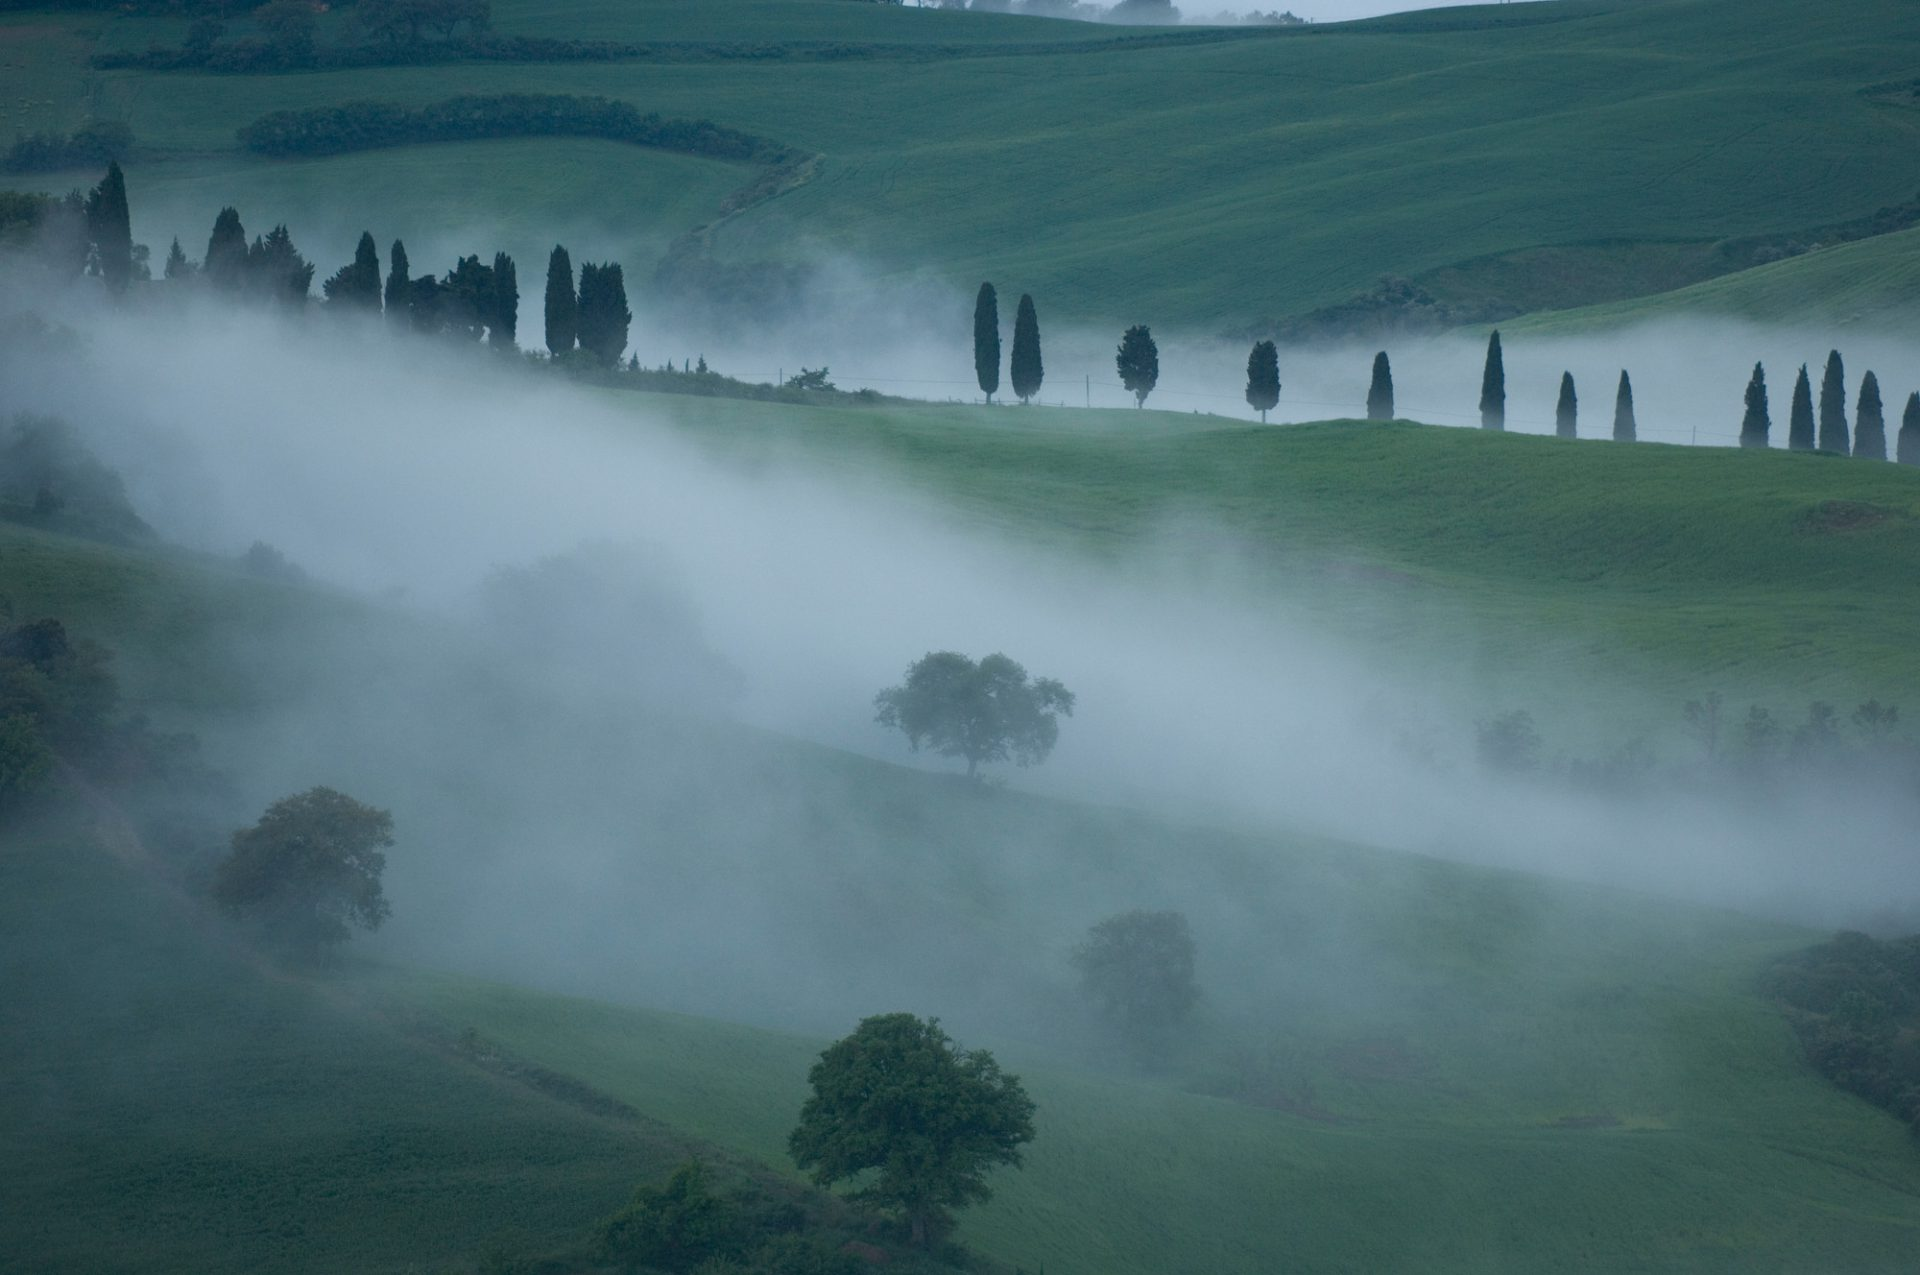 Photo: An early morning mist rolls over hills and vineyards near Pienza, Italy.